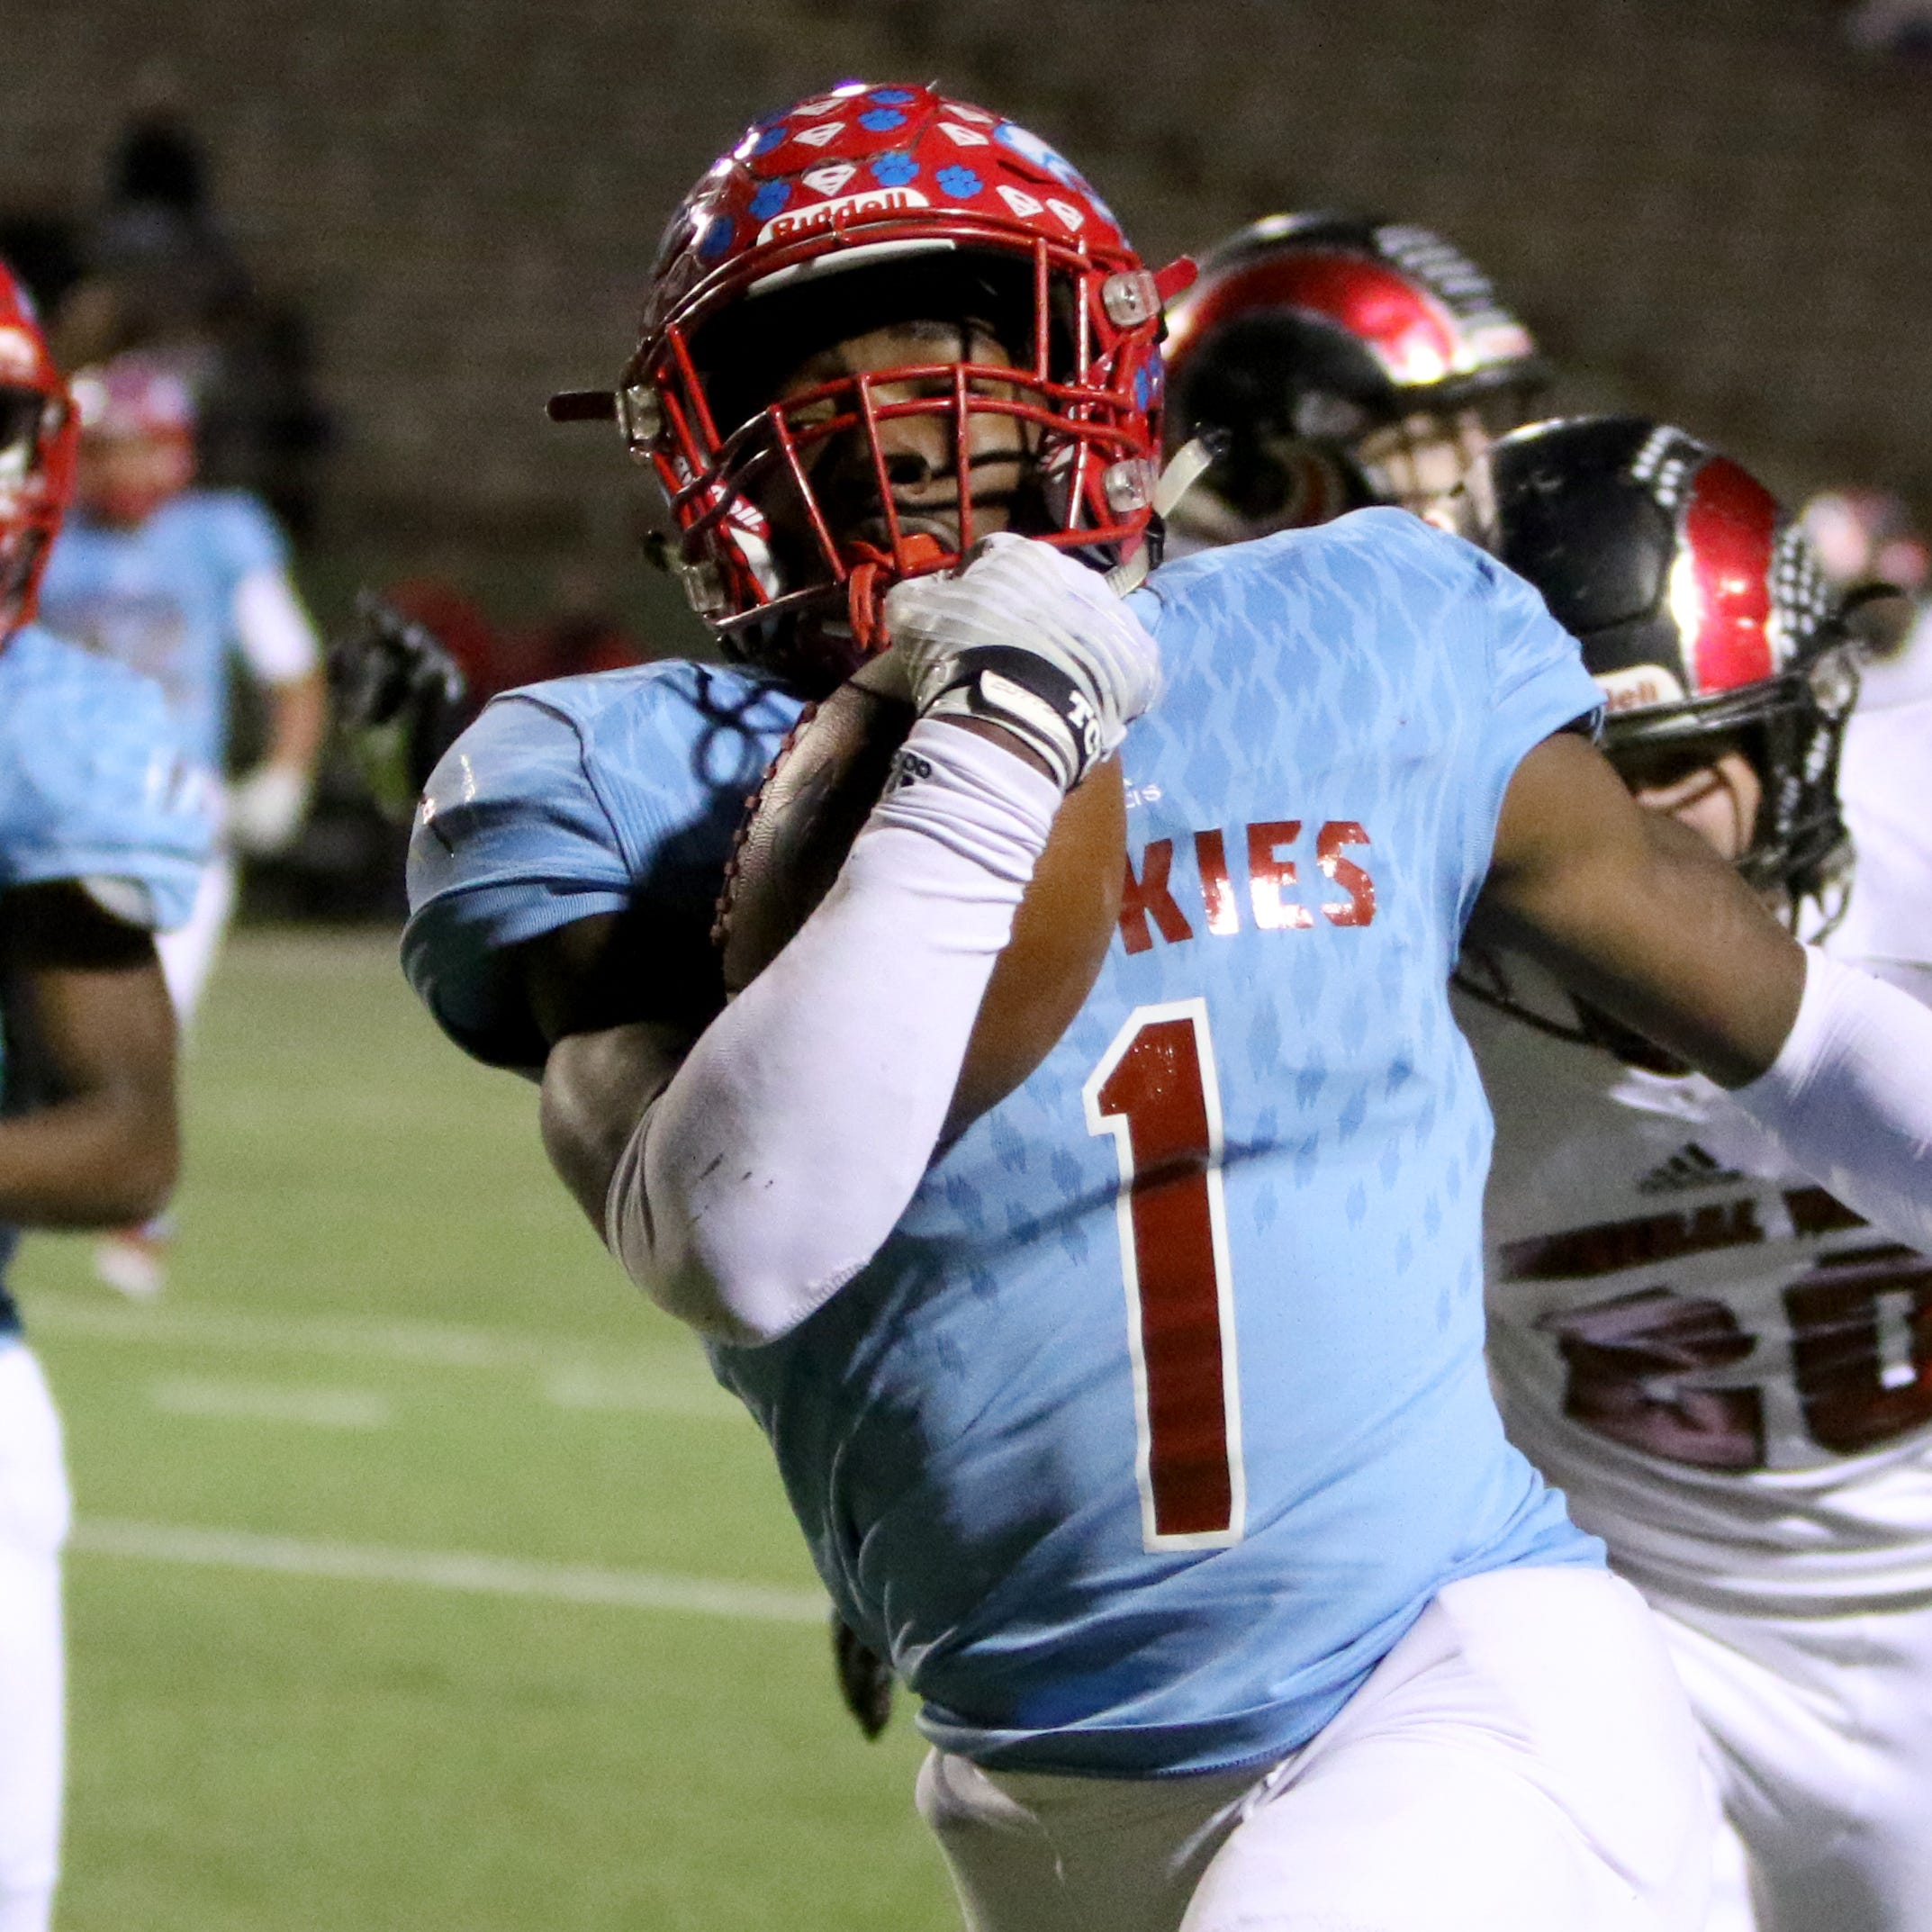 Hirschi's Foster repeats as AP 4A Offensive Player of the Year